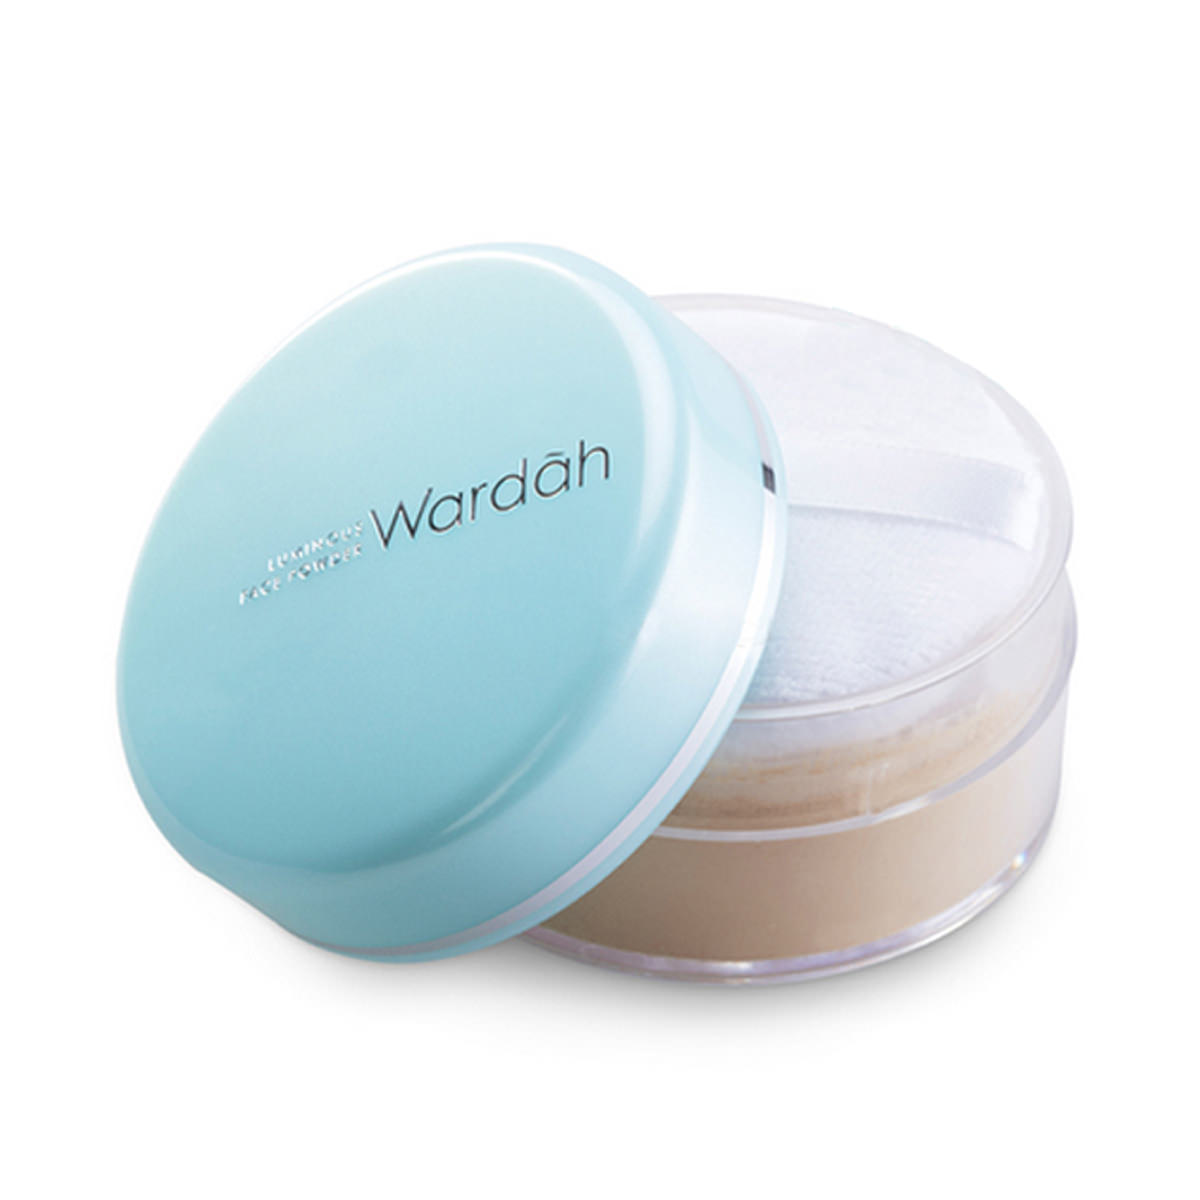 Wardah-Everyday-Luminous-Face-Powder-02-Beige-sfw(1)